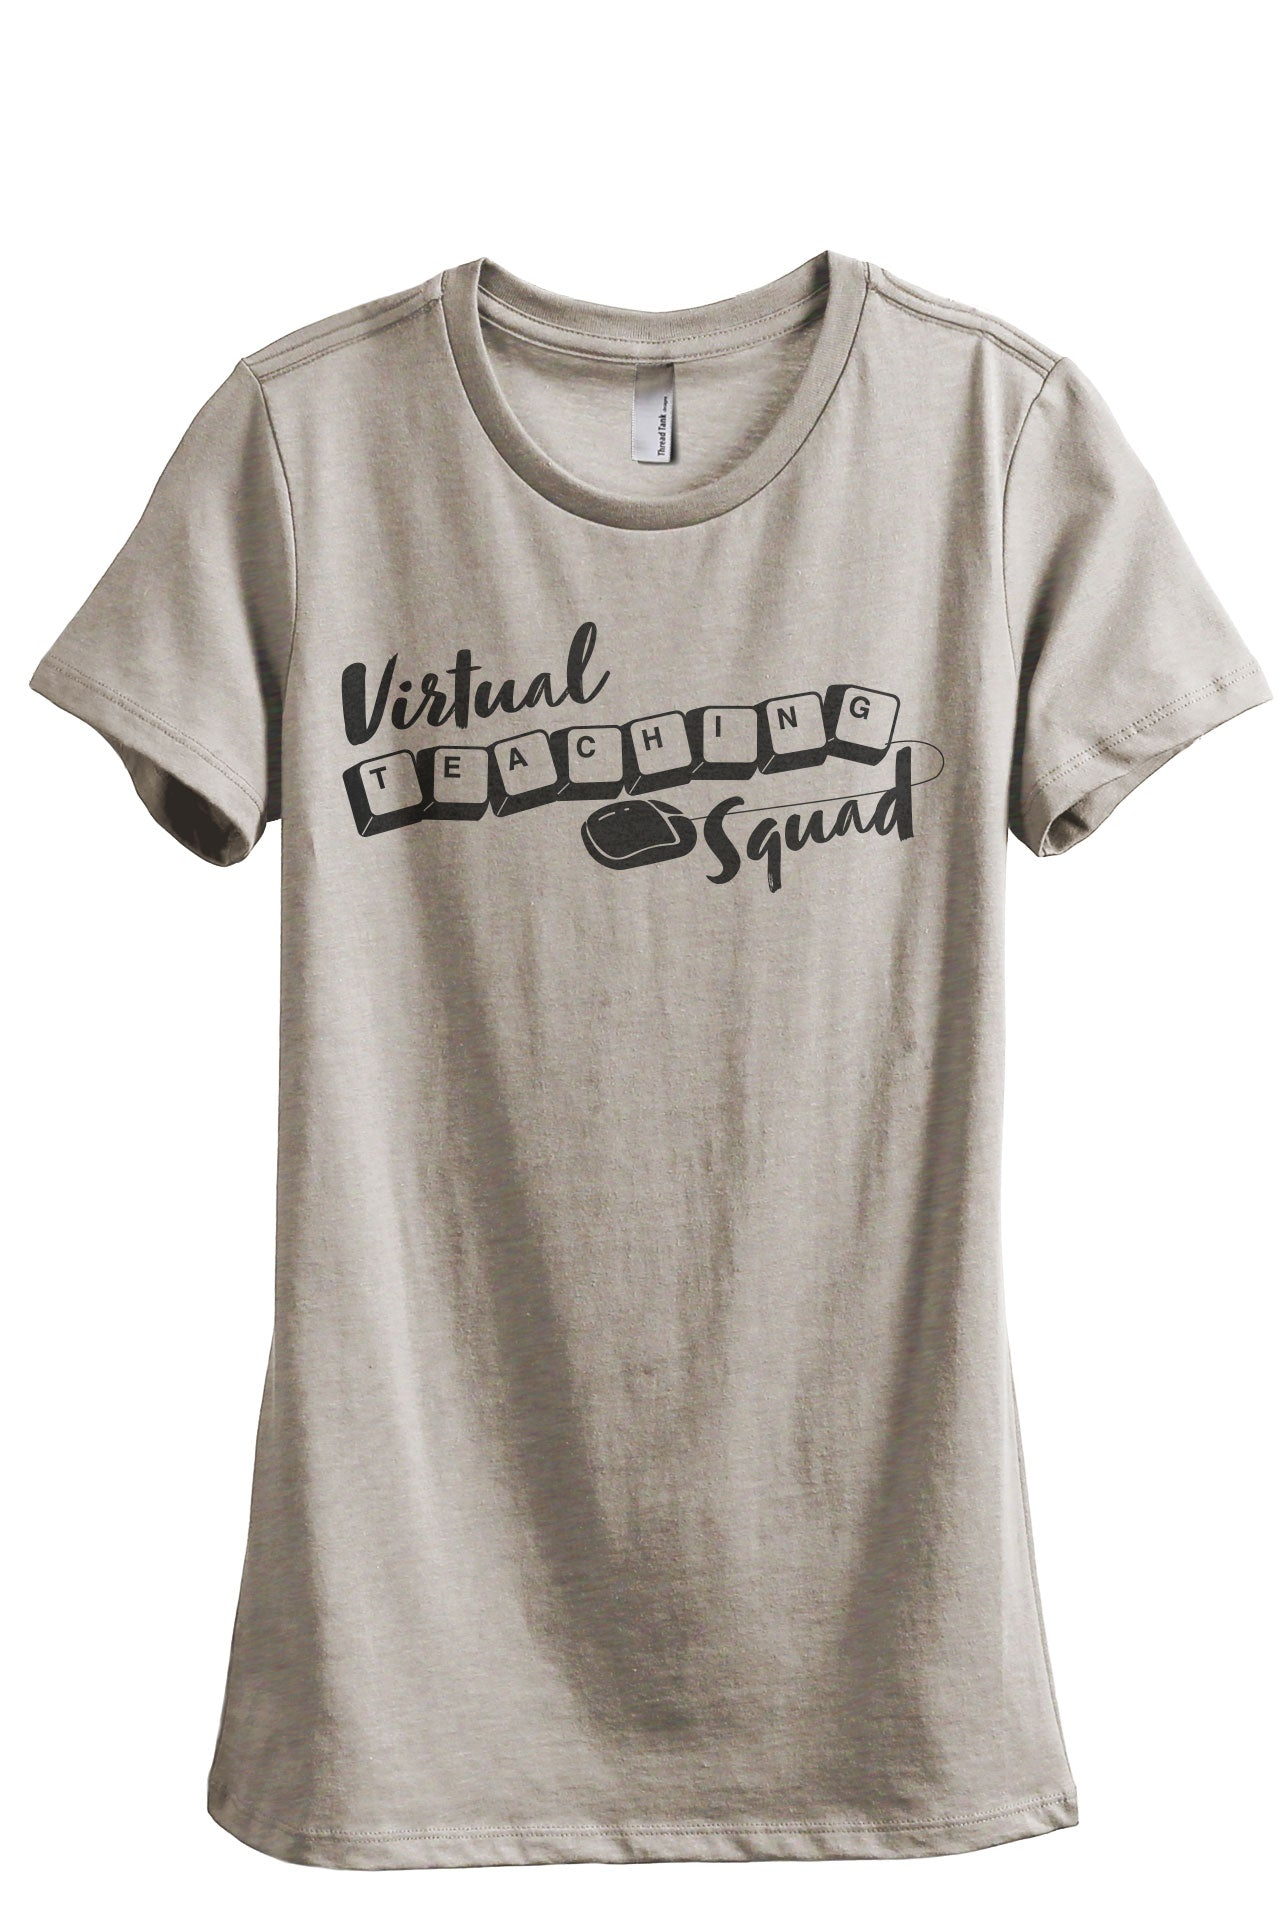 Virtual Teaching Squad Women's Relaxed Crewneck T-Shirt Top Tee Heather Tan